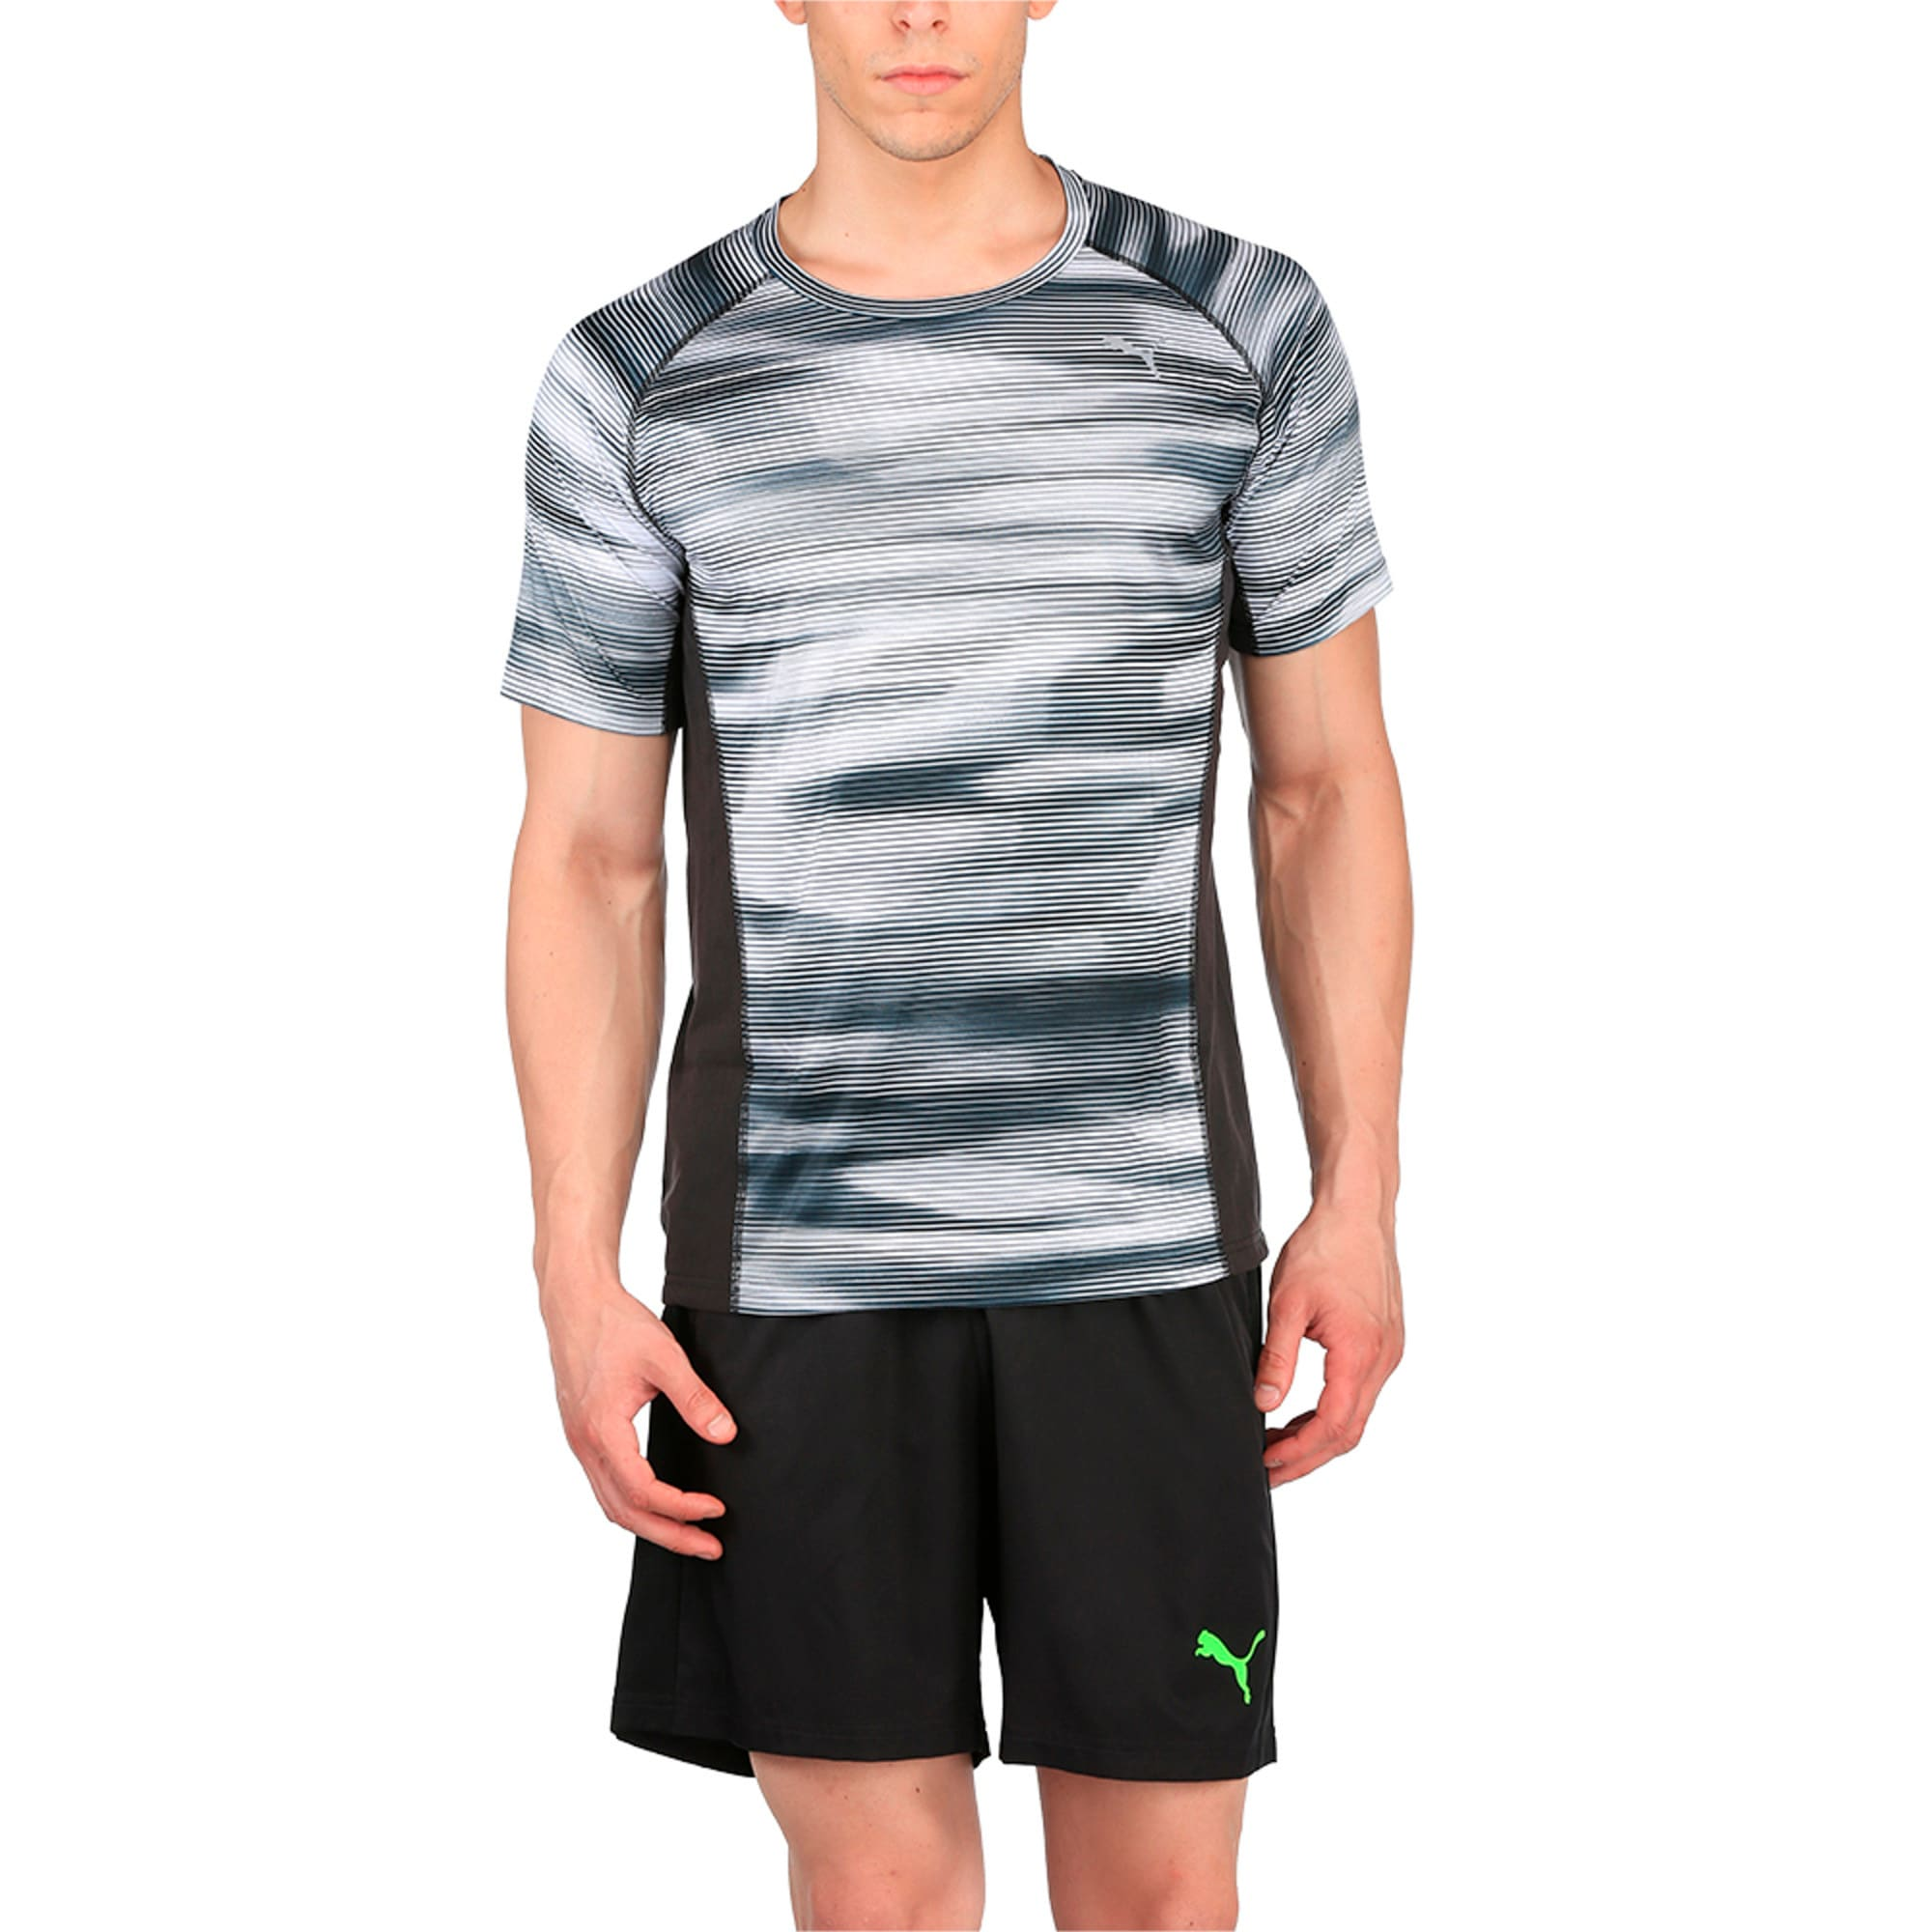 Thumbnail 2 of Running Men's Graphic T-Shirt, Puma Black Heather, medium-IND